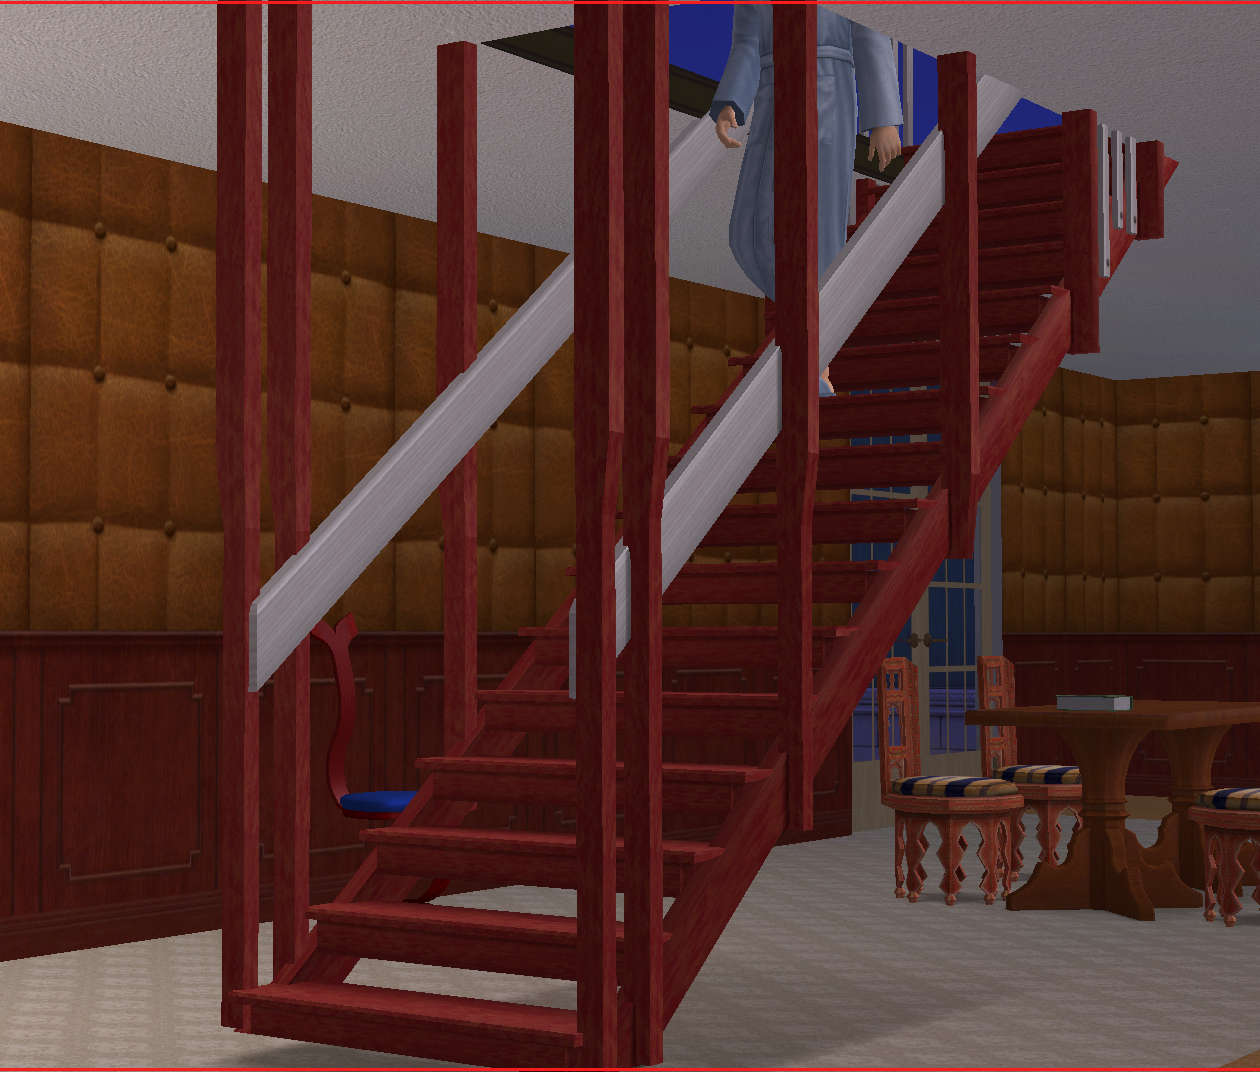 I Saw A Suspended Staircase In A Magazine And, Yup, My Sims Had To Have  One. Here It Is.